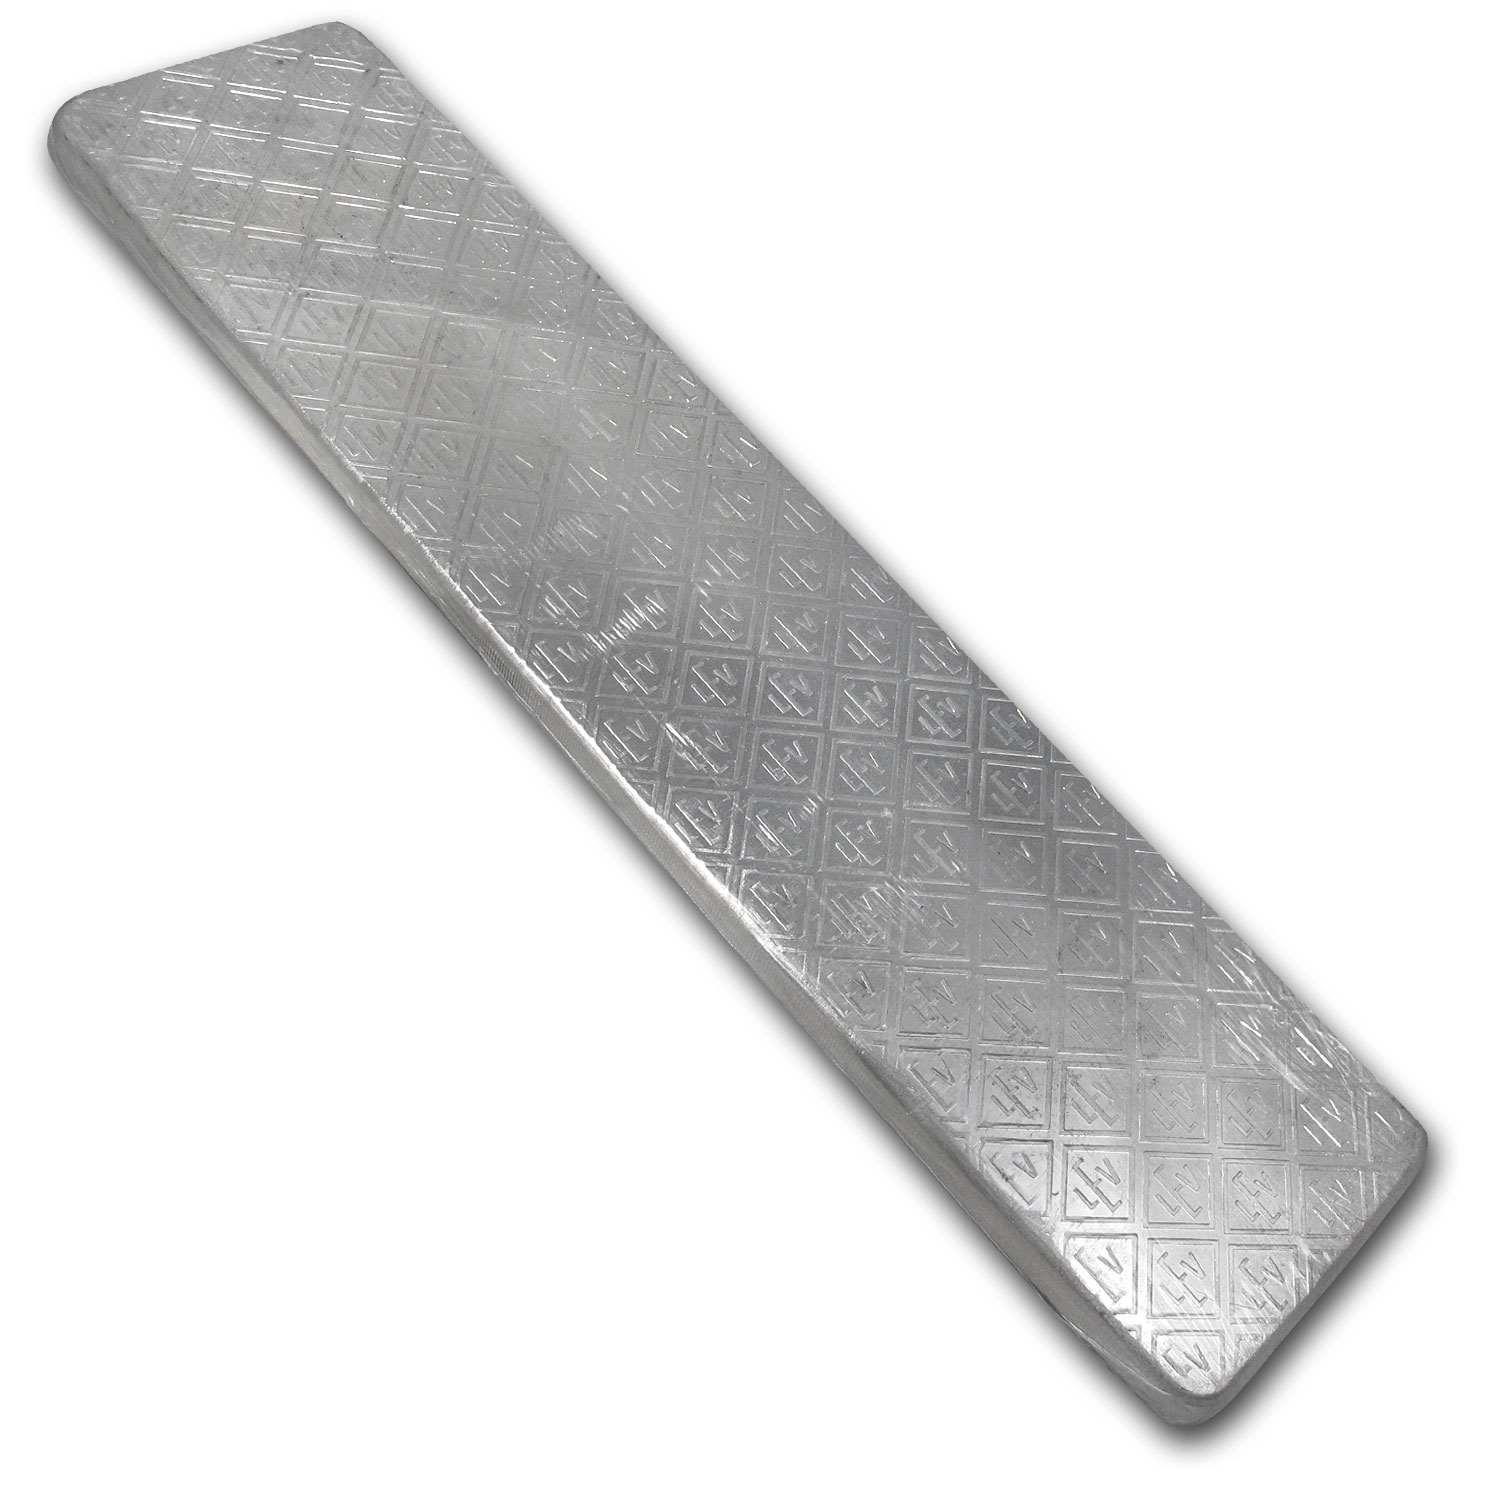 100 oz Silver Bars - Geiger (Security Line Series)